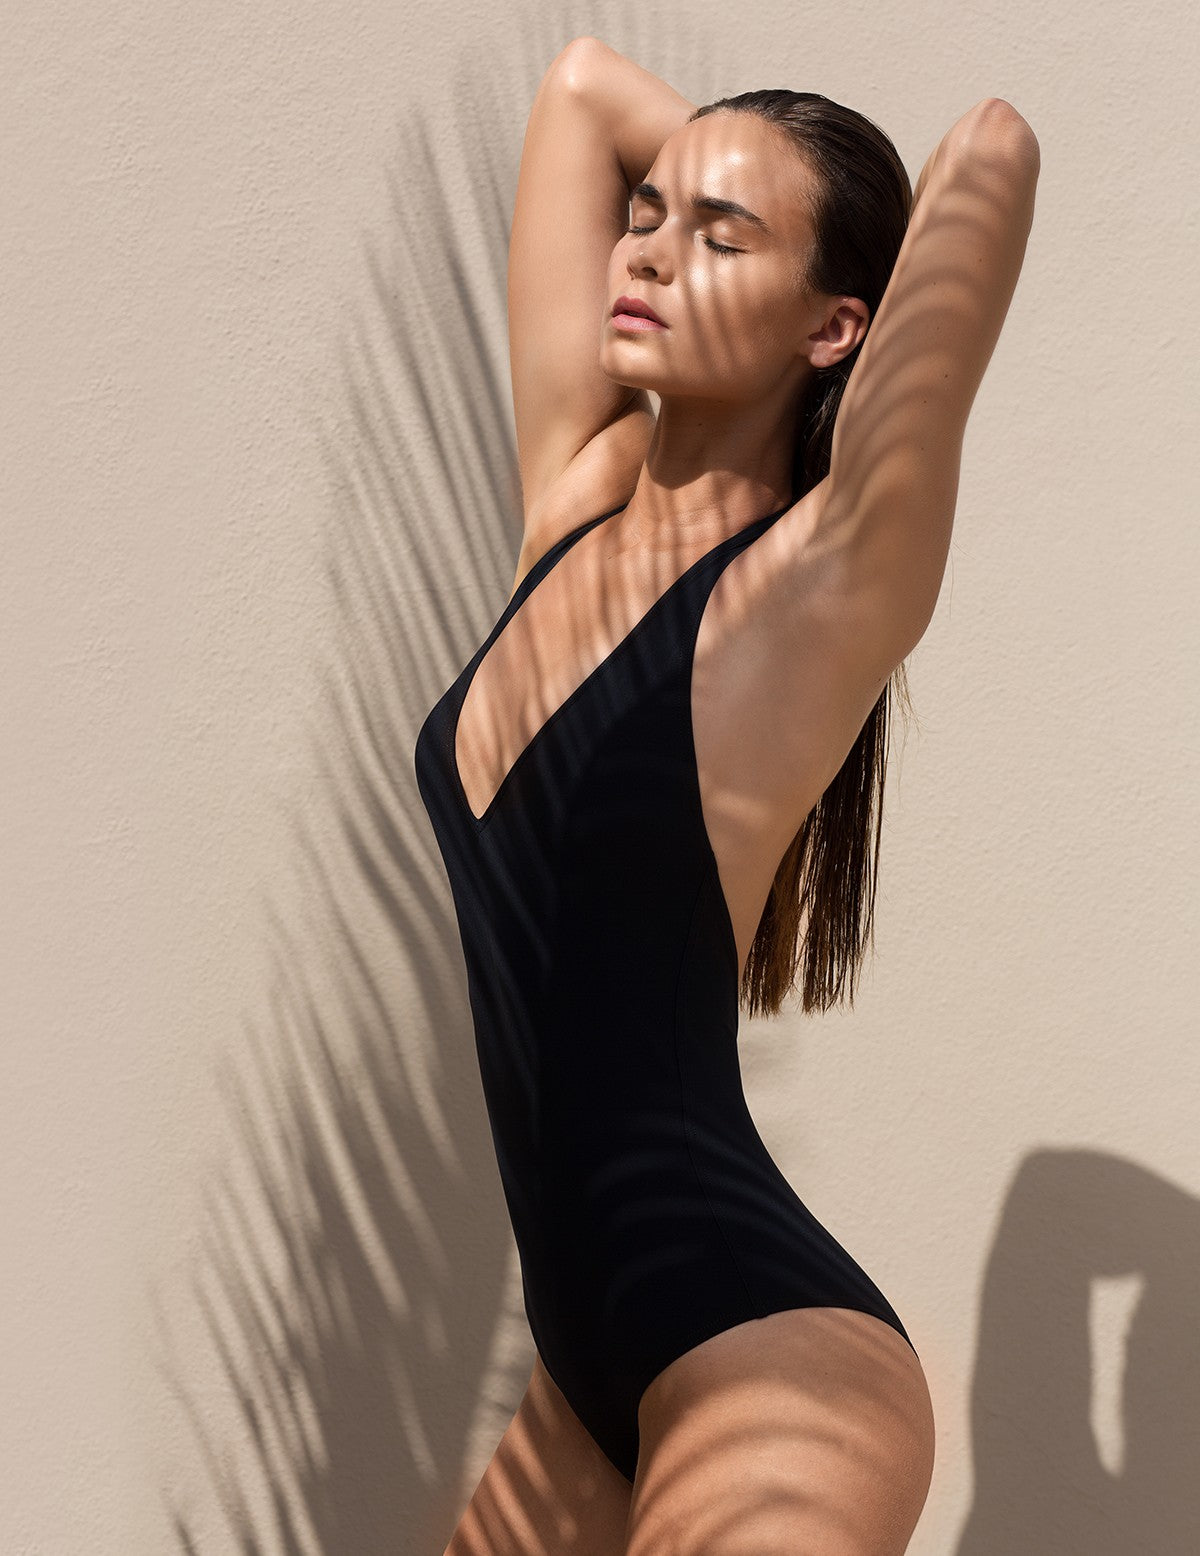 The Black Backless Swimsuit Statice - Swimsuit Statice